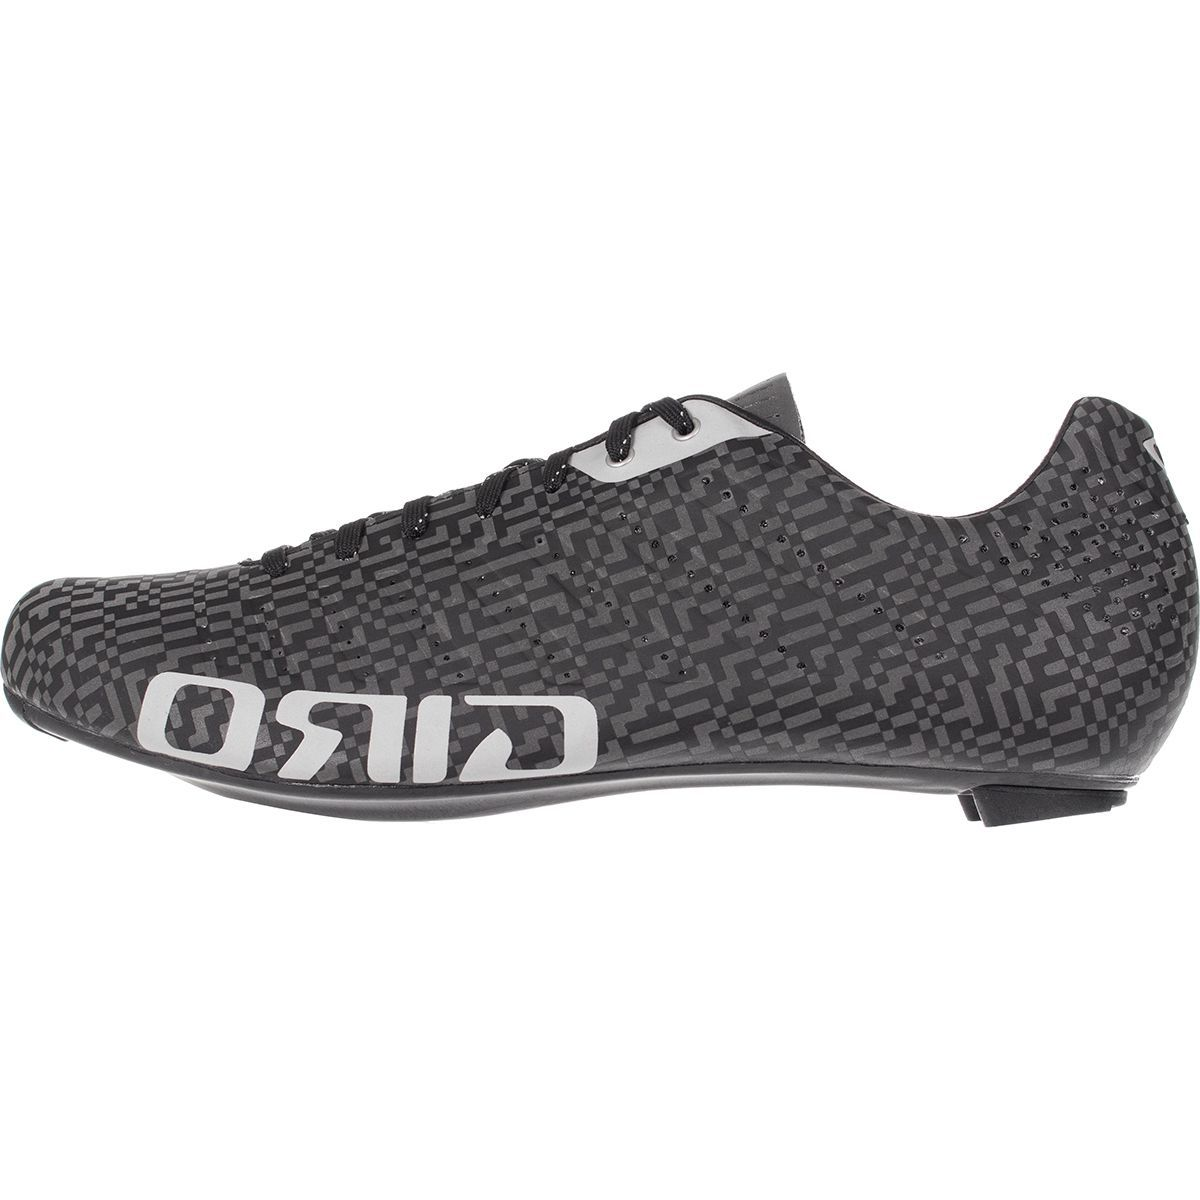 Giro Empire SLX Reflective Cycling Shoe - Men's